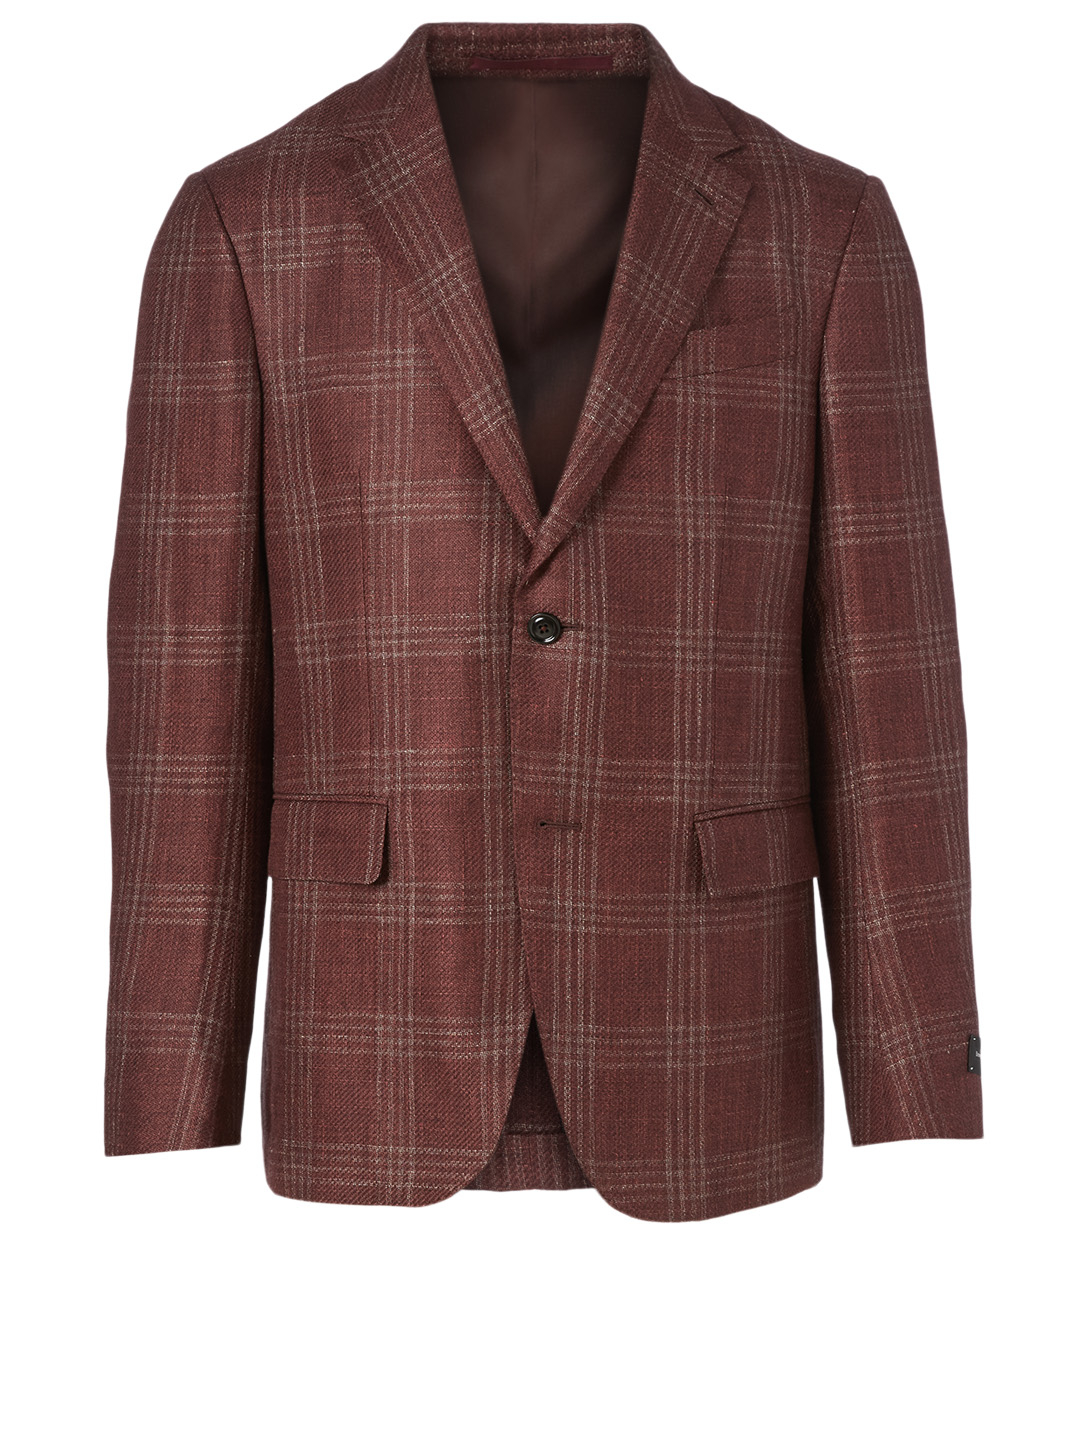 ERMENEGILDO ZEGNA Linen And Alpaca Jacket In Check Print Men's Orange